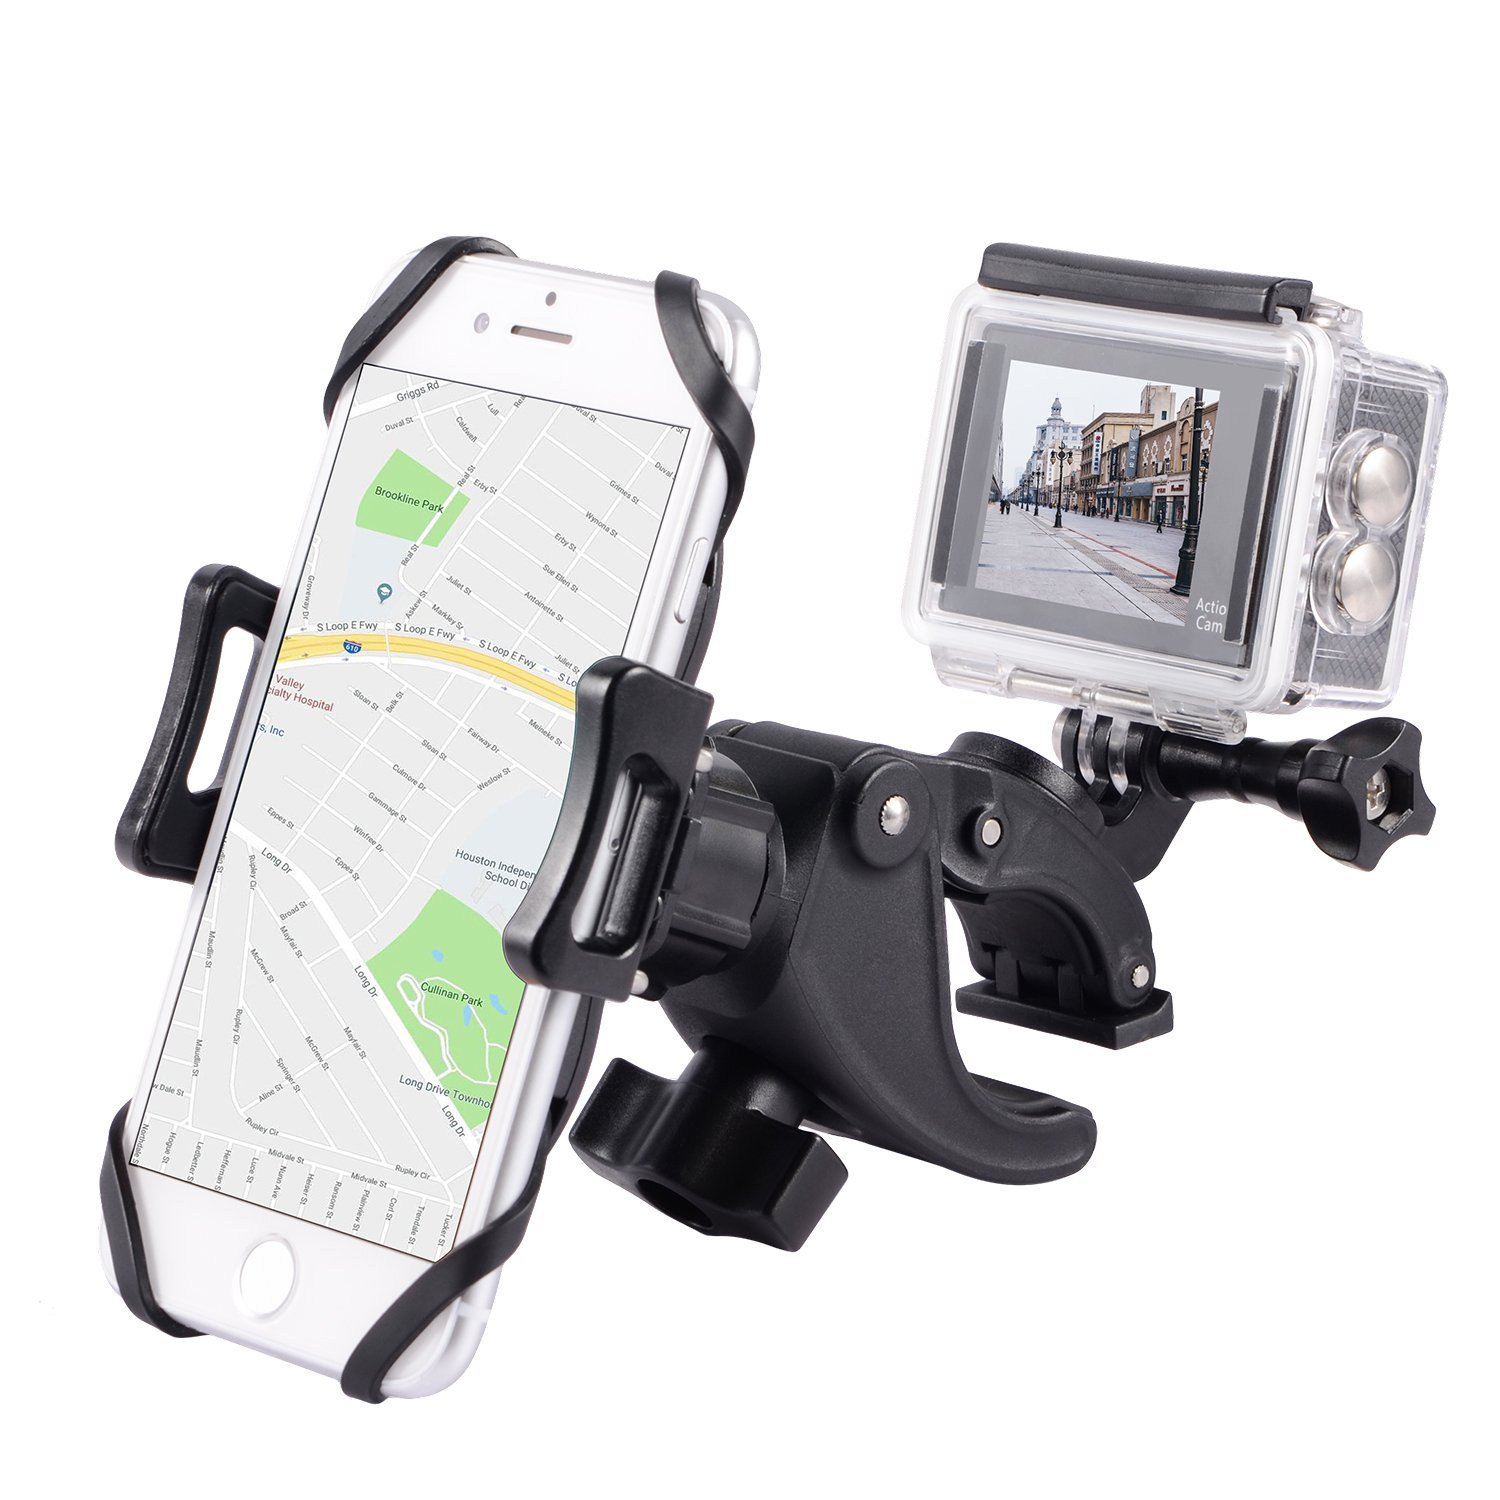 YELIN Bike Phone Mount Motorcycle Phone Holder Bike Camera Mount 2 in 1 Bicycle Holder Handlebar Clamp for Gopro Action Cam iPhone X 8 7 7 Plus 7s 6s Samsung Phone